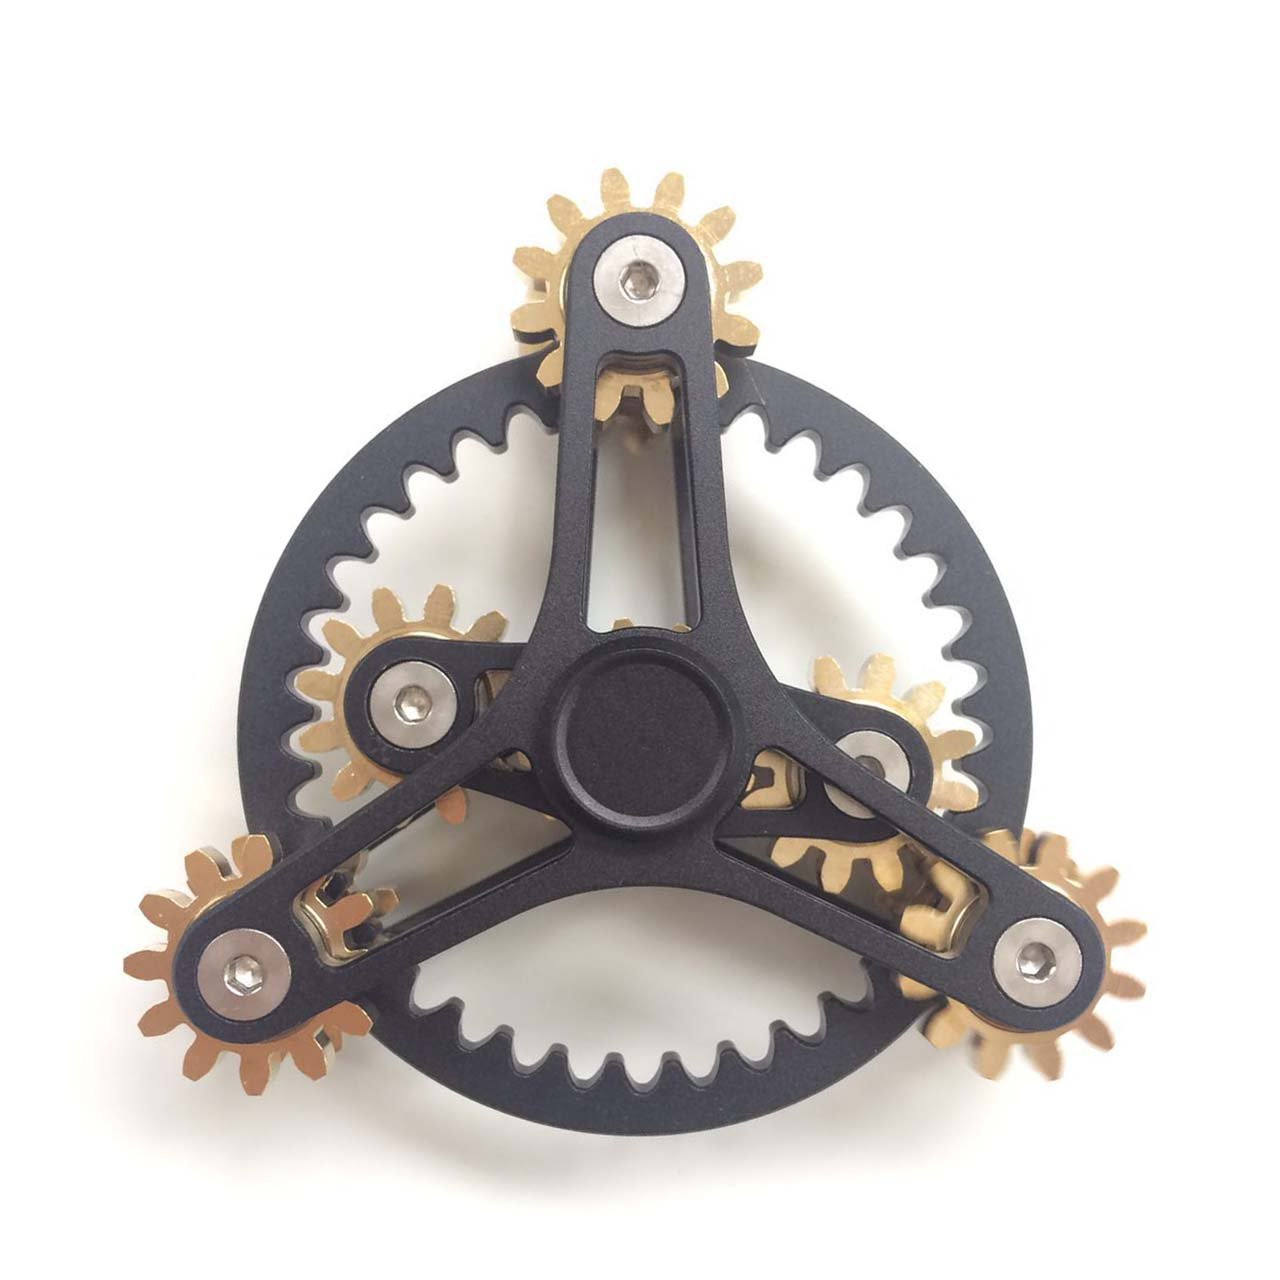 FREELOVE 9 Series Gear Pure Copper Brass Fidget Spinner Toy EDC Industrial Mechinery Disassemble R188 Silent Stainless Steel Bearing,3~5 Minutes (6 Gear Wind Fire Wheel Black, 6 Gear Wind Fire Wheel)